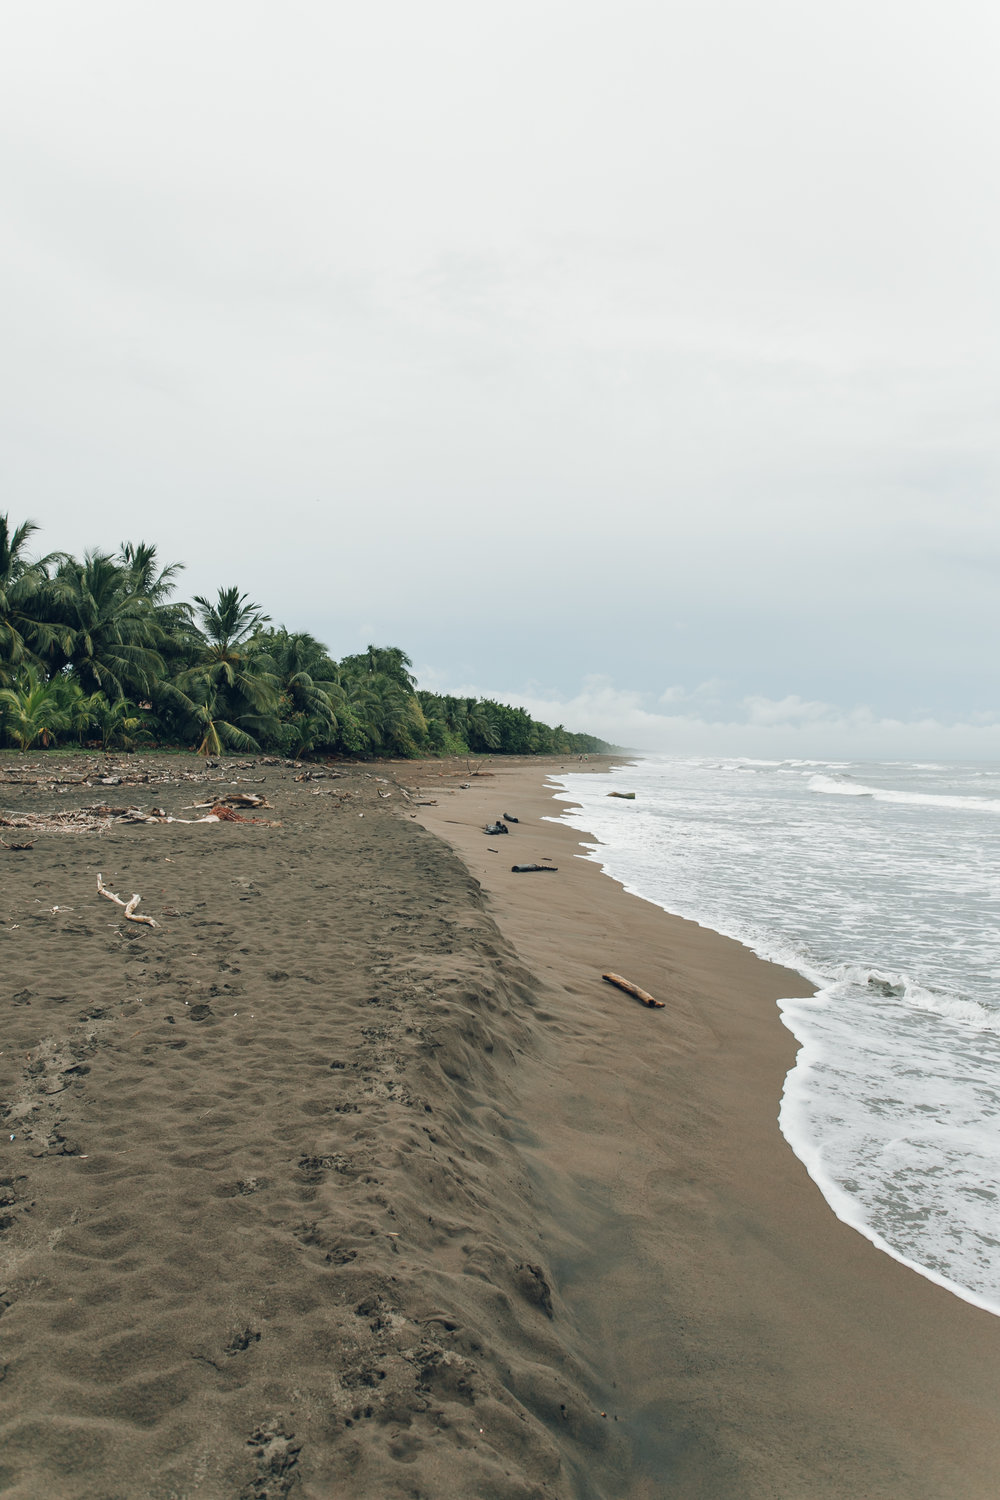 Tortuguero village and beach in Costa Rica.